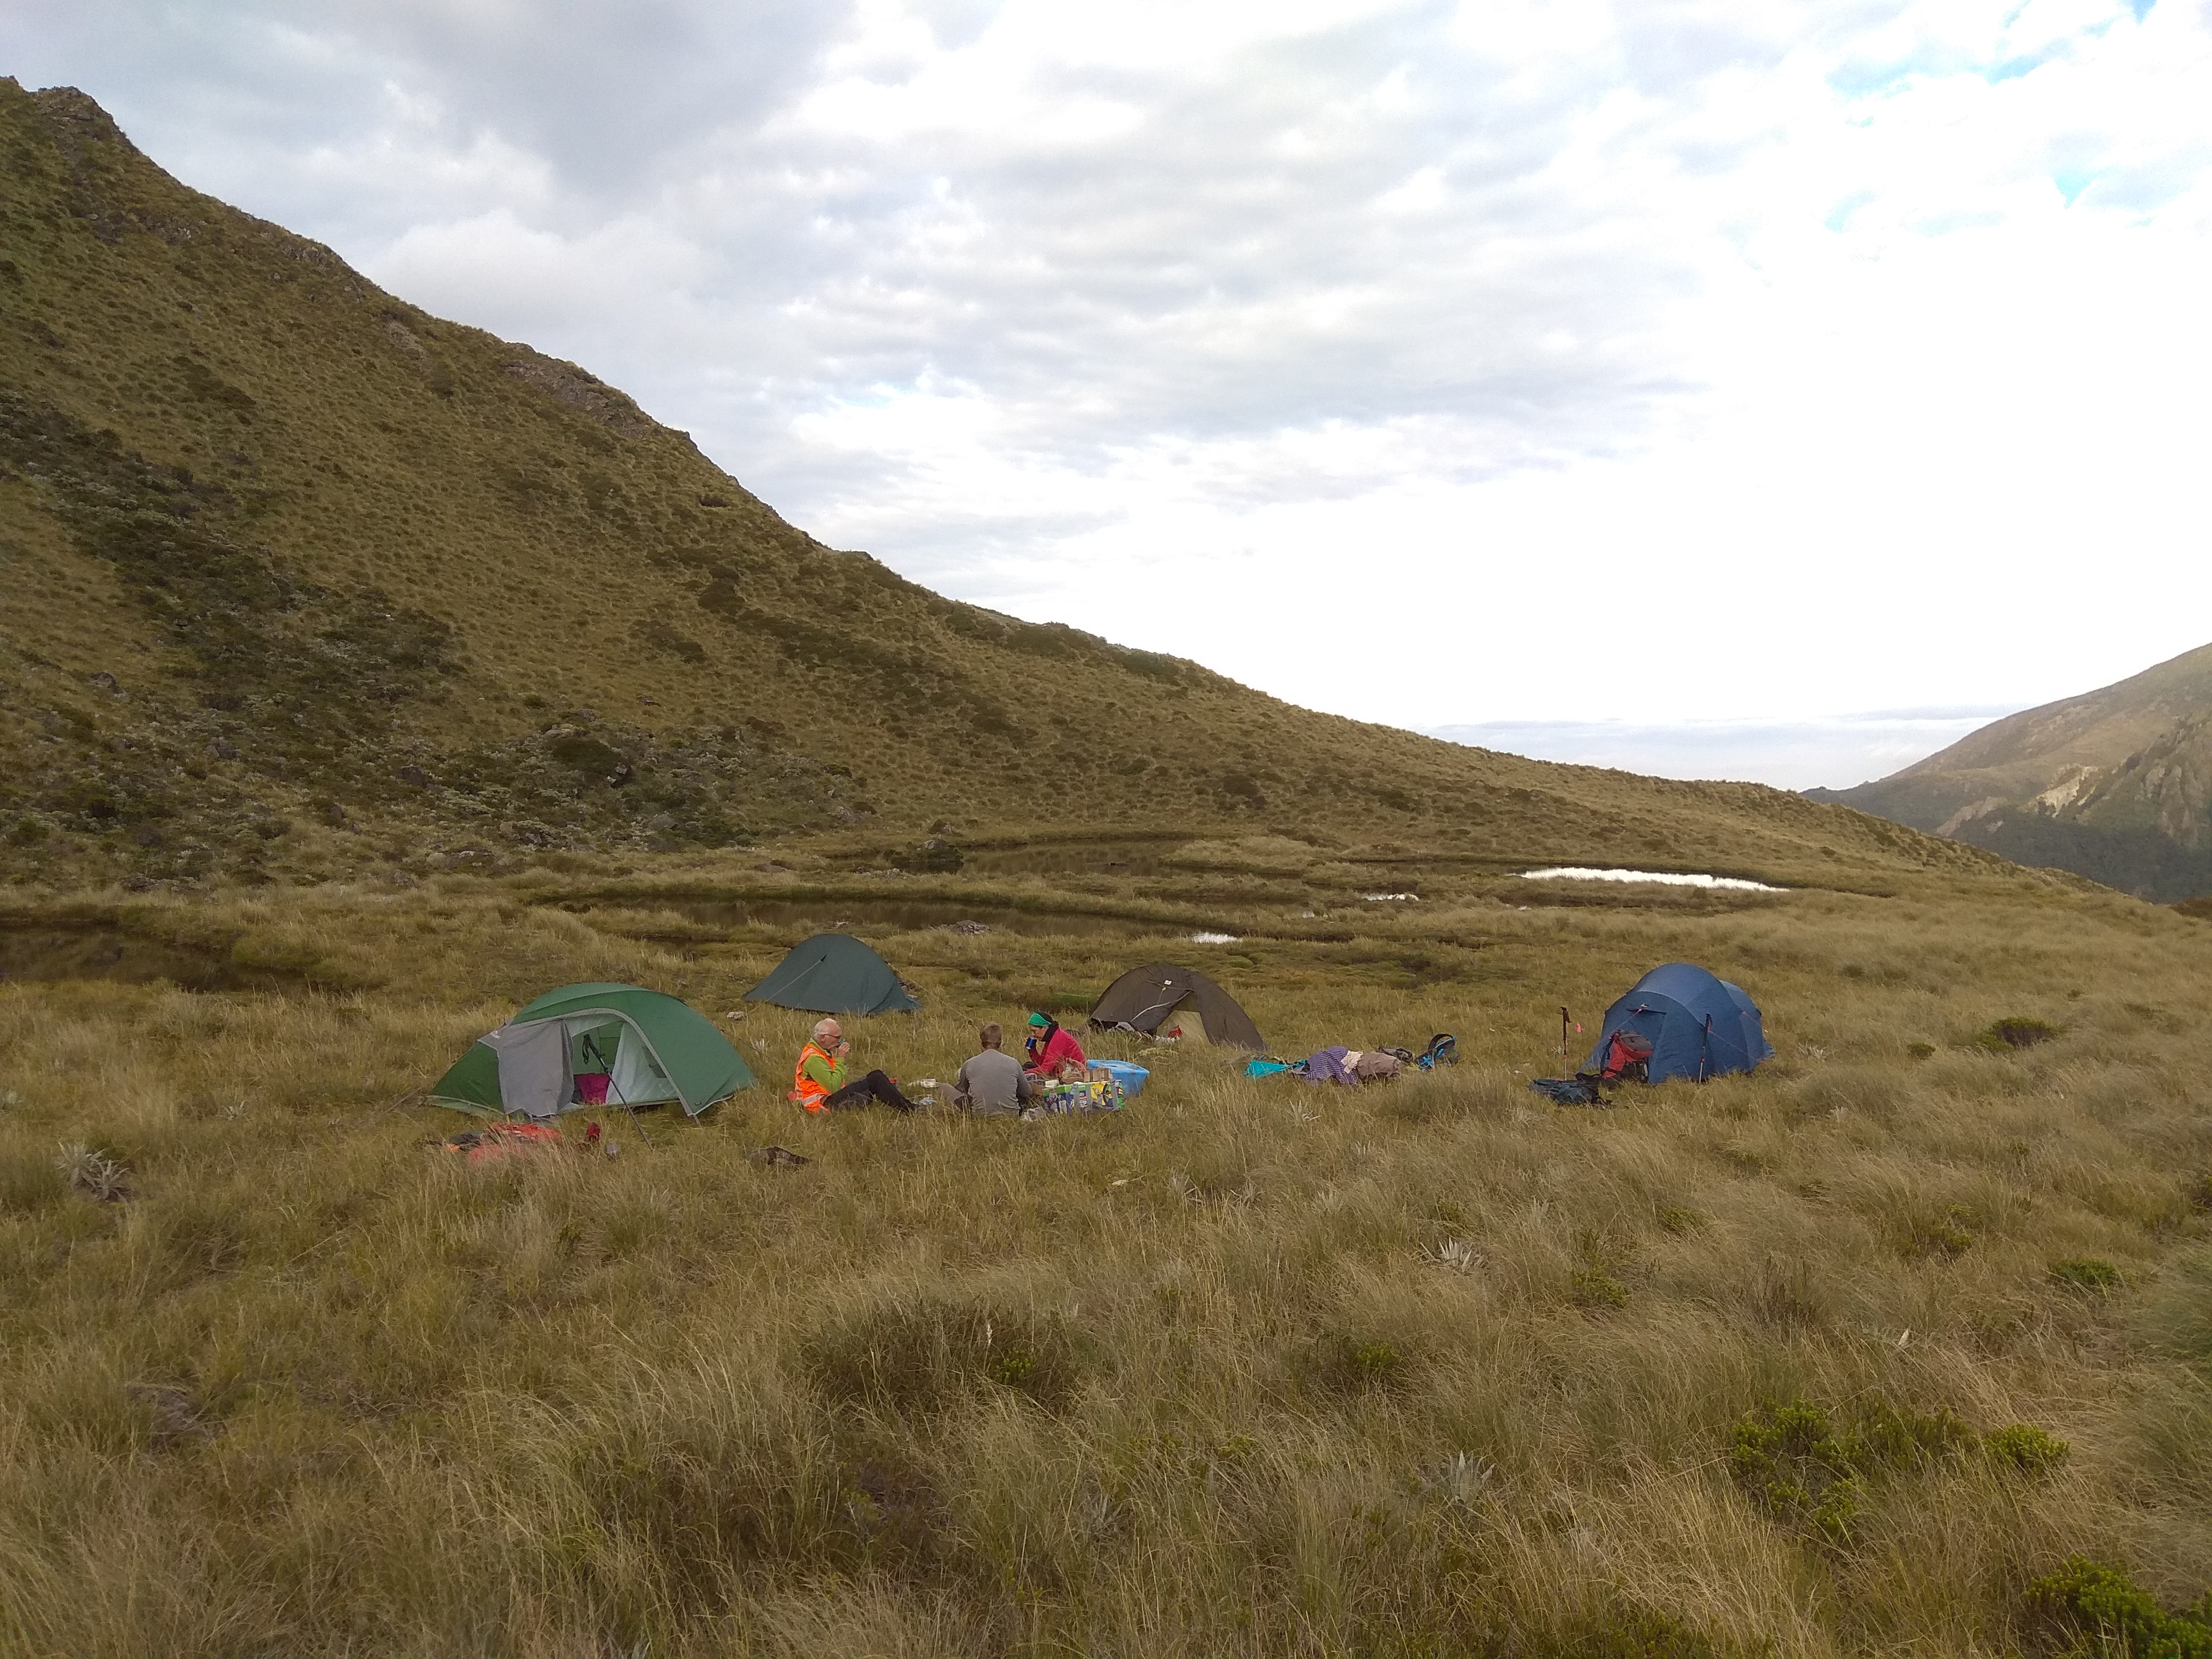 People sitting in the middle of a campsite surrounded by four tents on the side of a grassy mountain